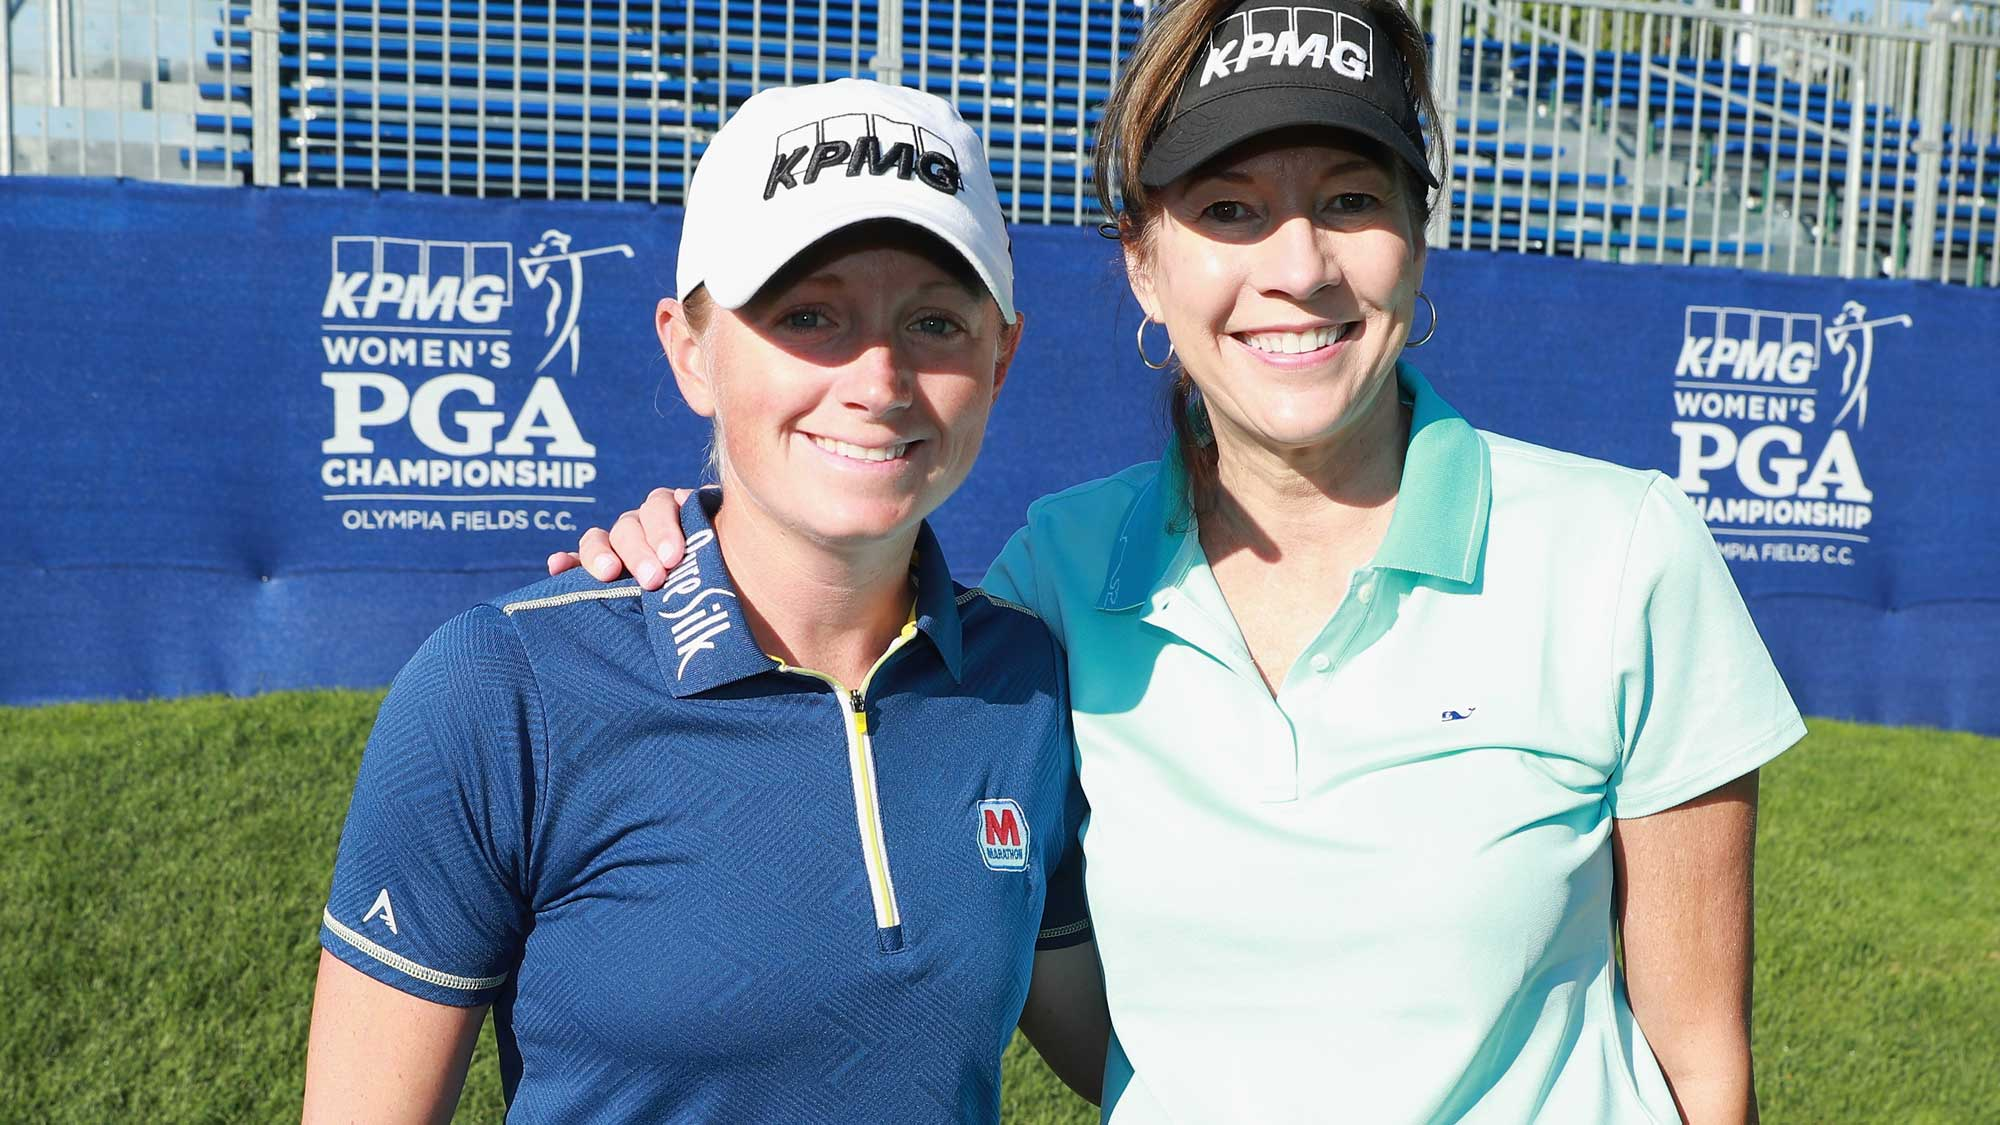 Stacy Lewis (L) poses alongside Lynne Doughtie, Chairman and CEO of KPMG, during the pro-am prior to the start of the 2017 KPMG Women's PGA Championship